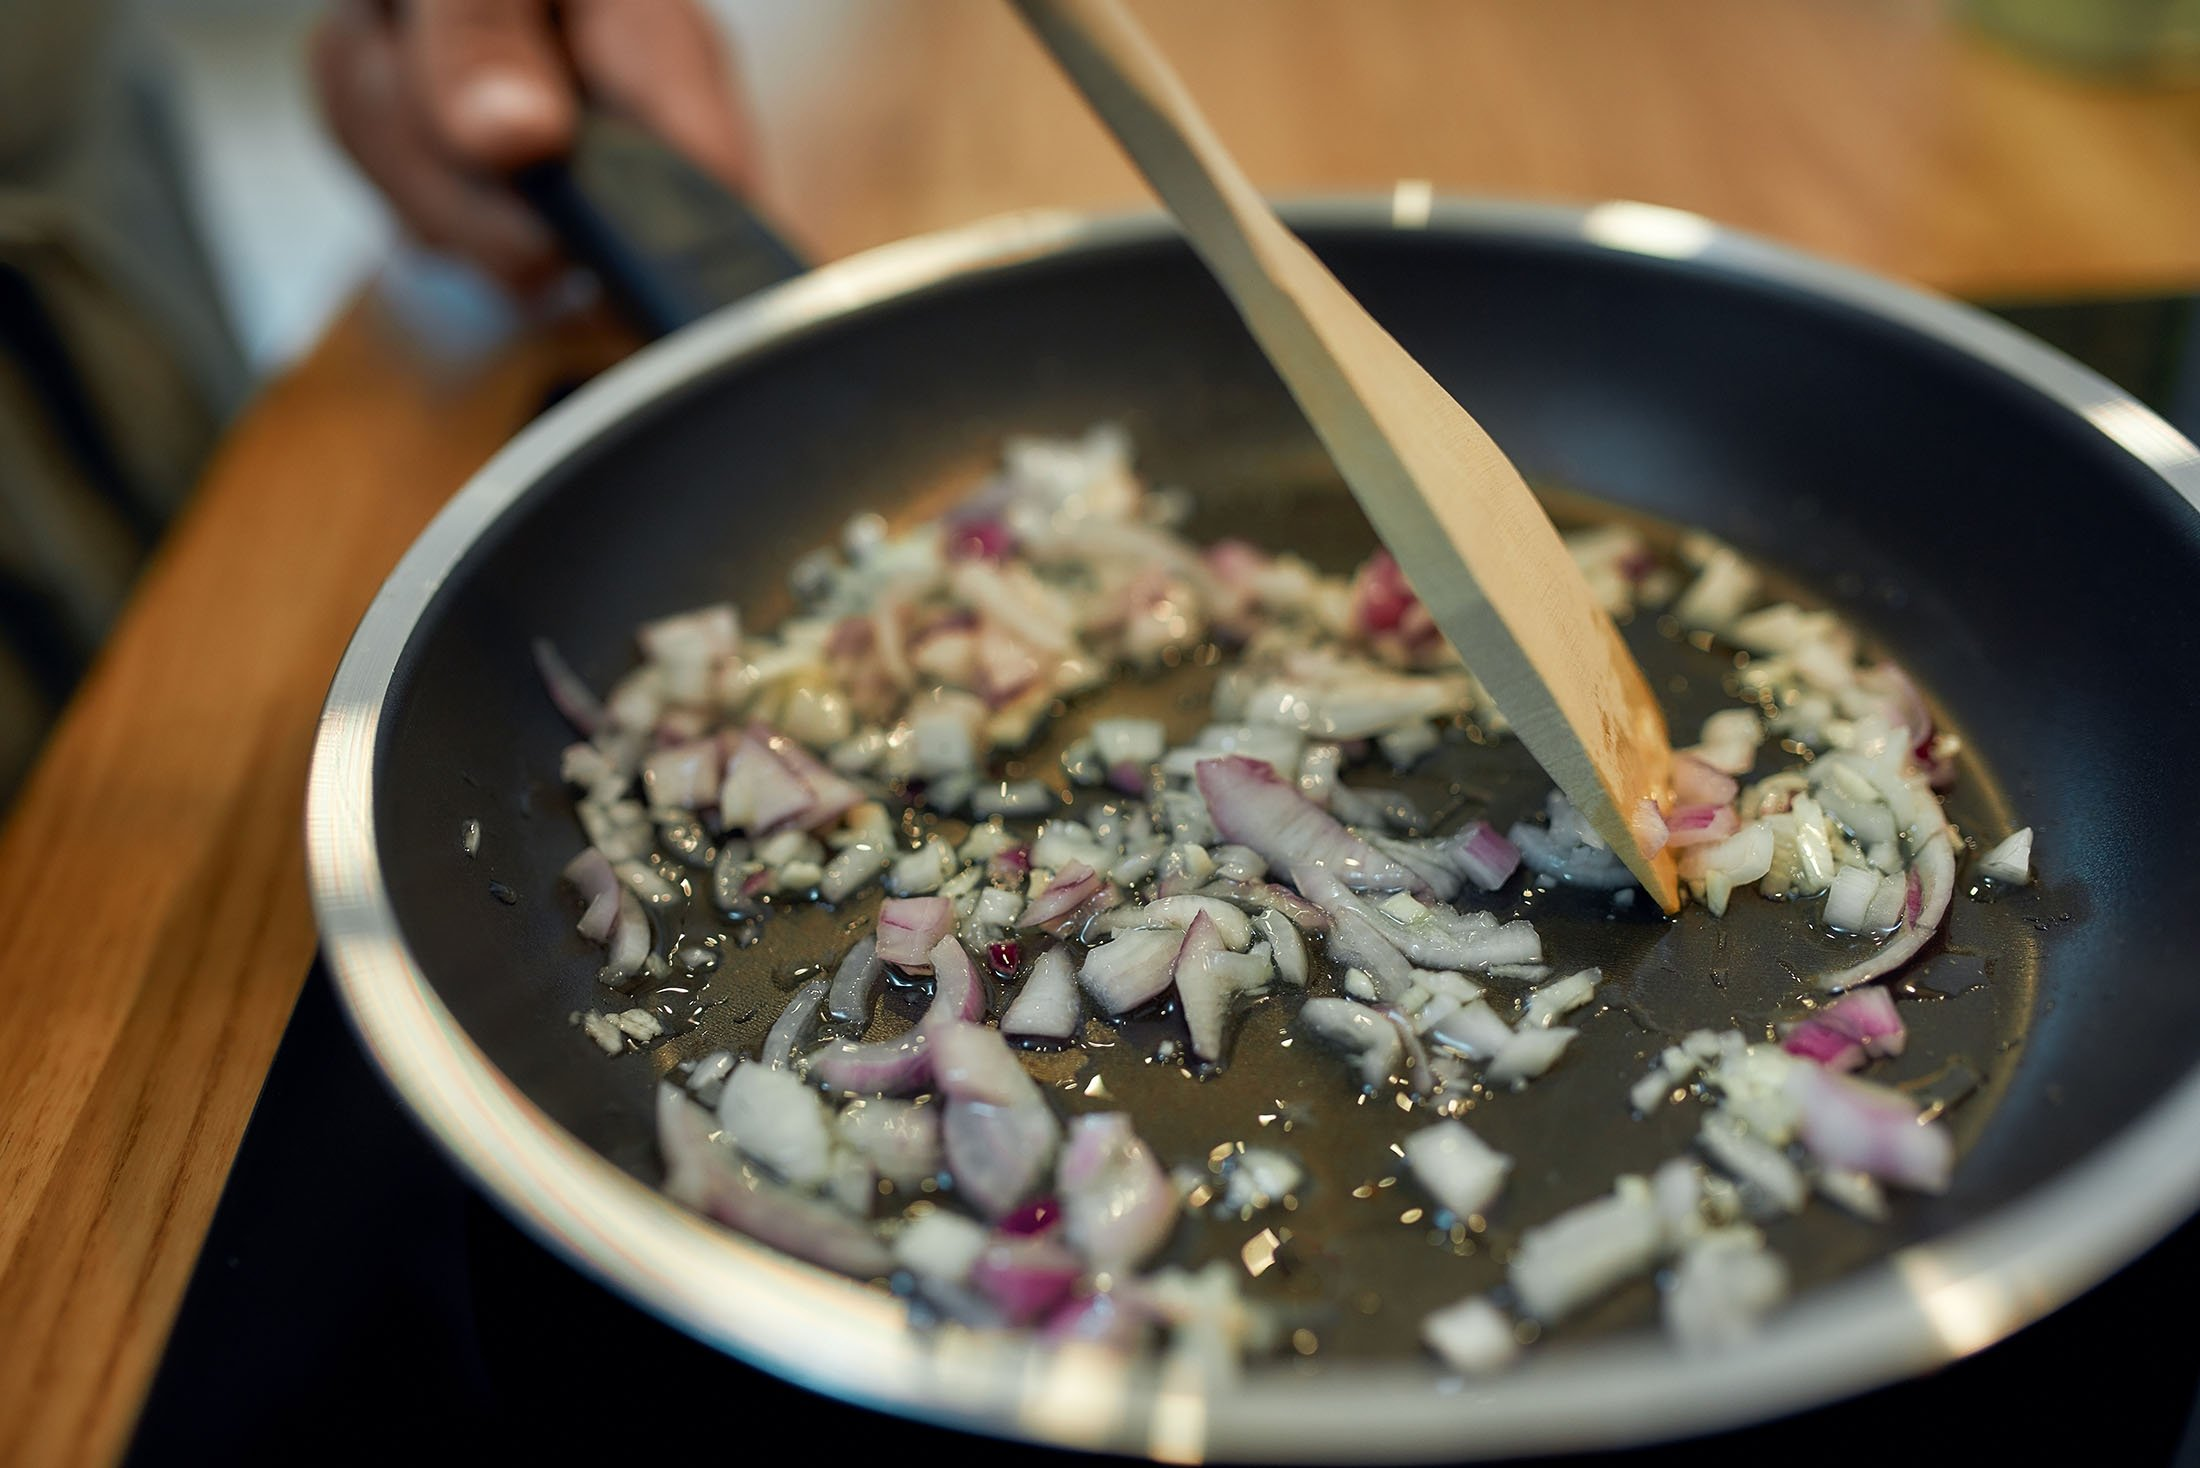 Turks have many interesting terms about sauteeing onions. (Shutterstock Photo)